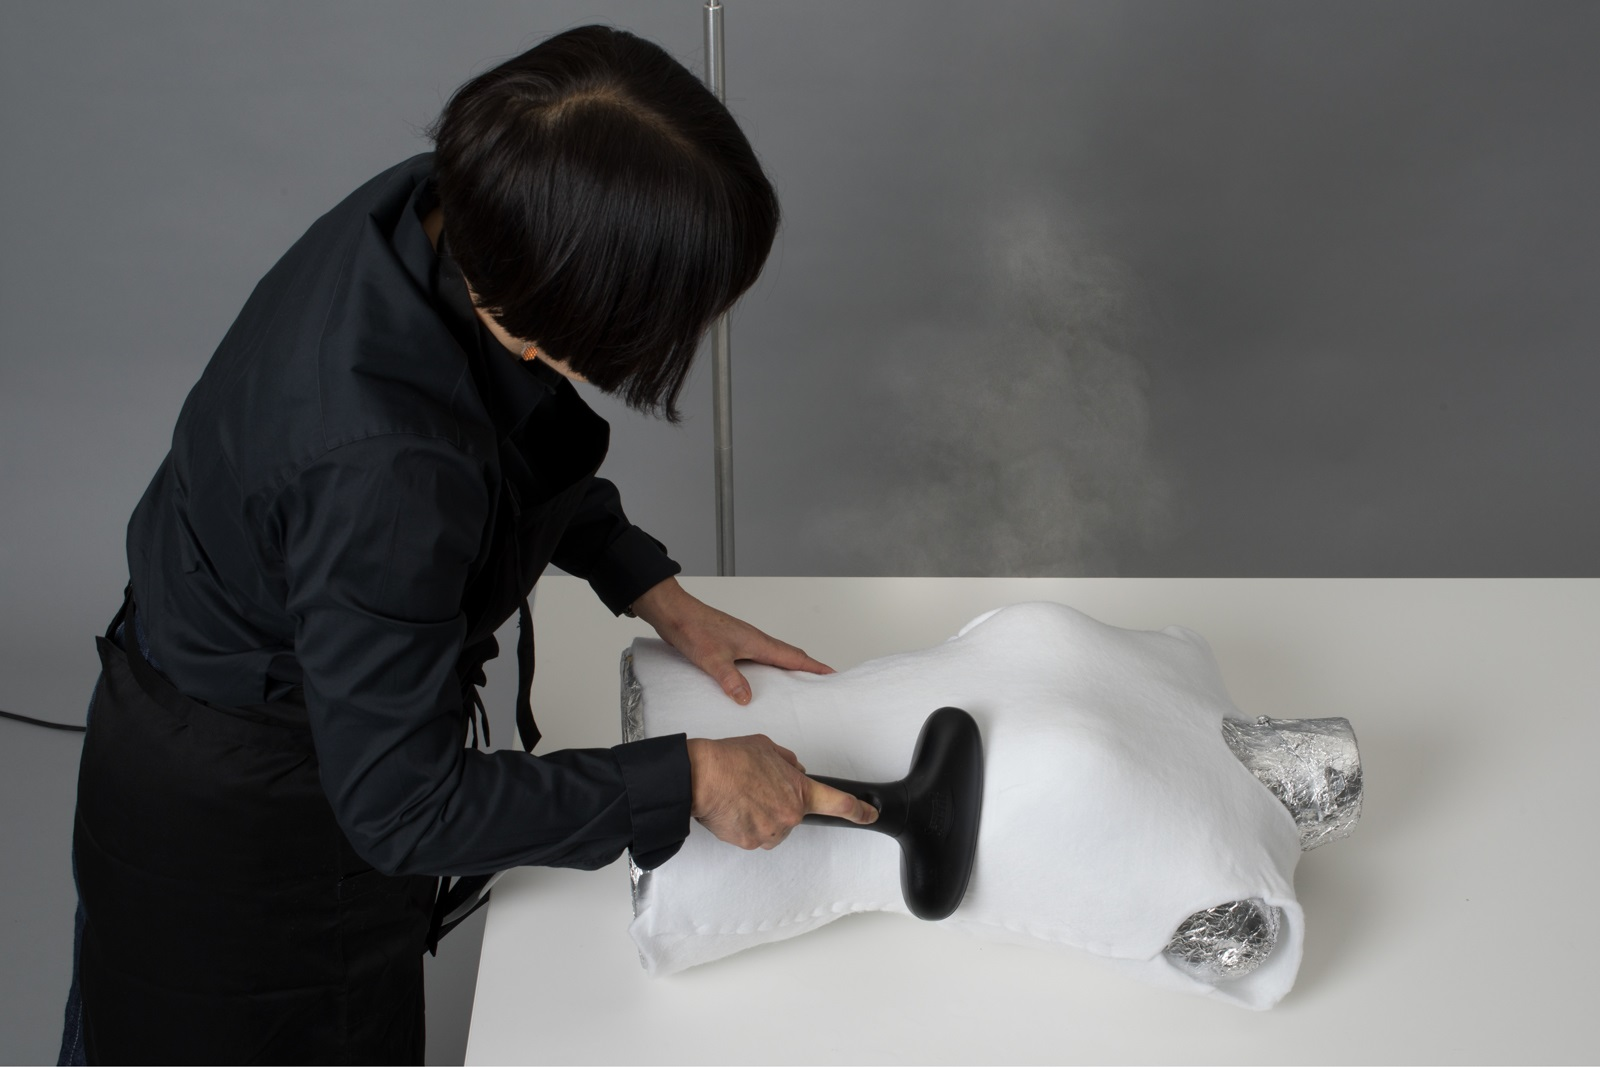 A woman works on a dress form lying on the table in front of her. The dress form is covered in aluminium foil over which Suzanne is steam-moulding a synthetic white felt in order to create a stylised body shape.